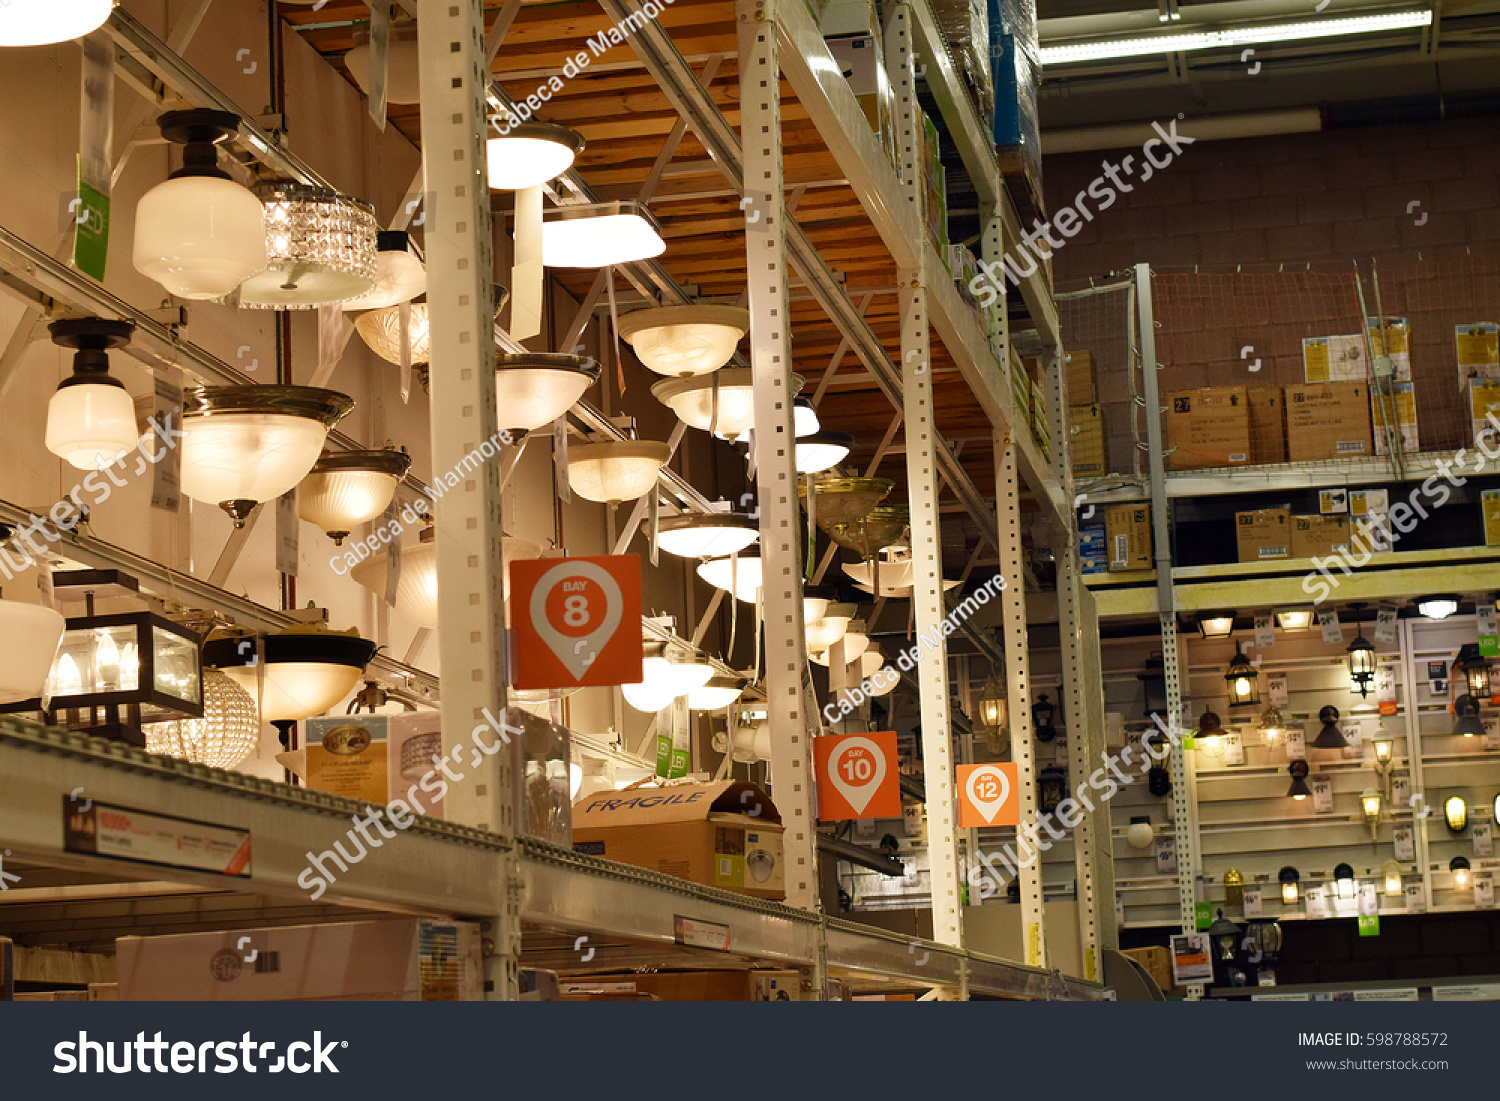 chandeliers fan inquiries restore fans lighting cheap sale ceiling store discount for and ceilings call